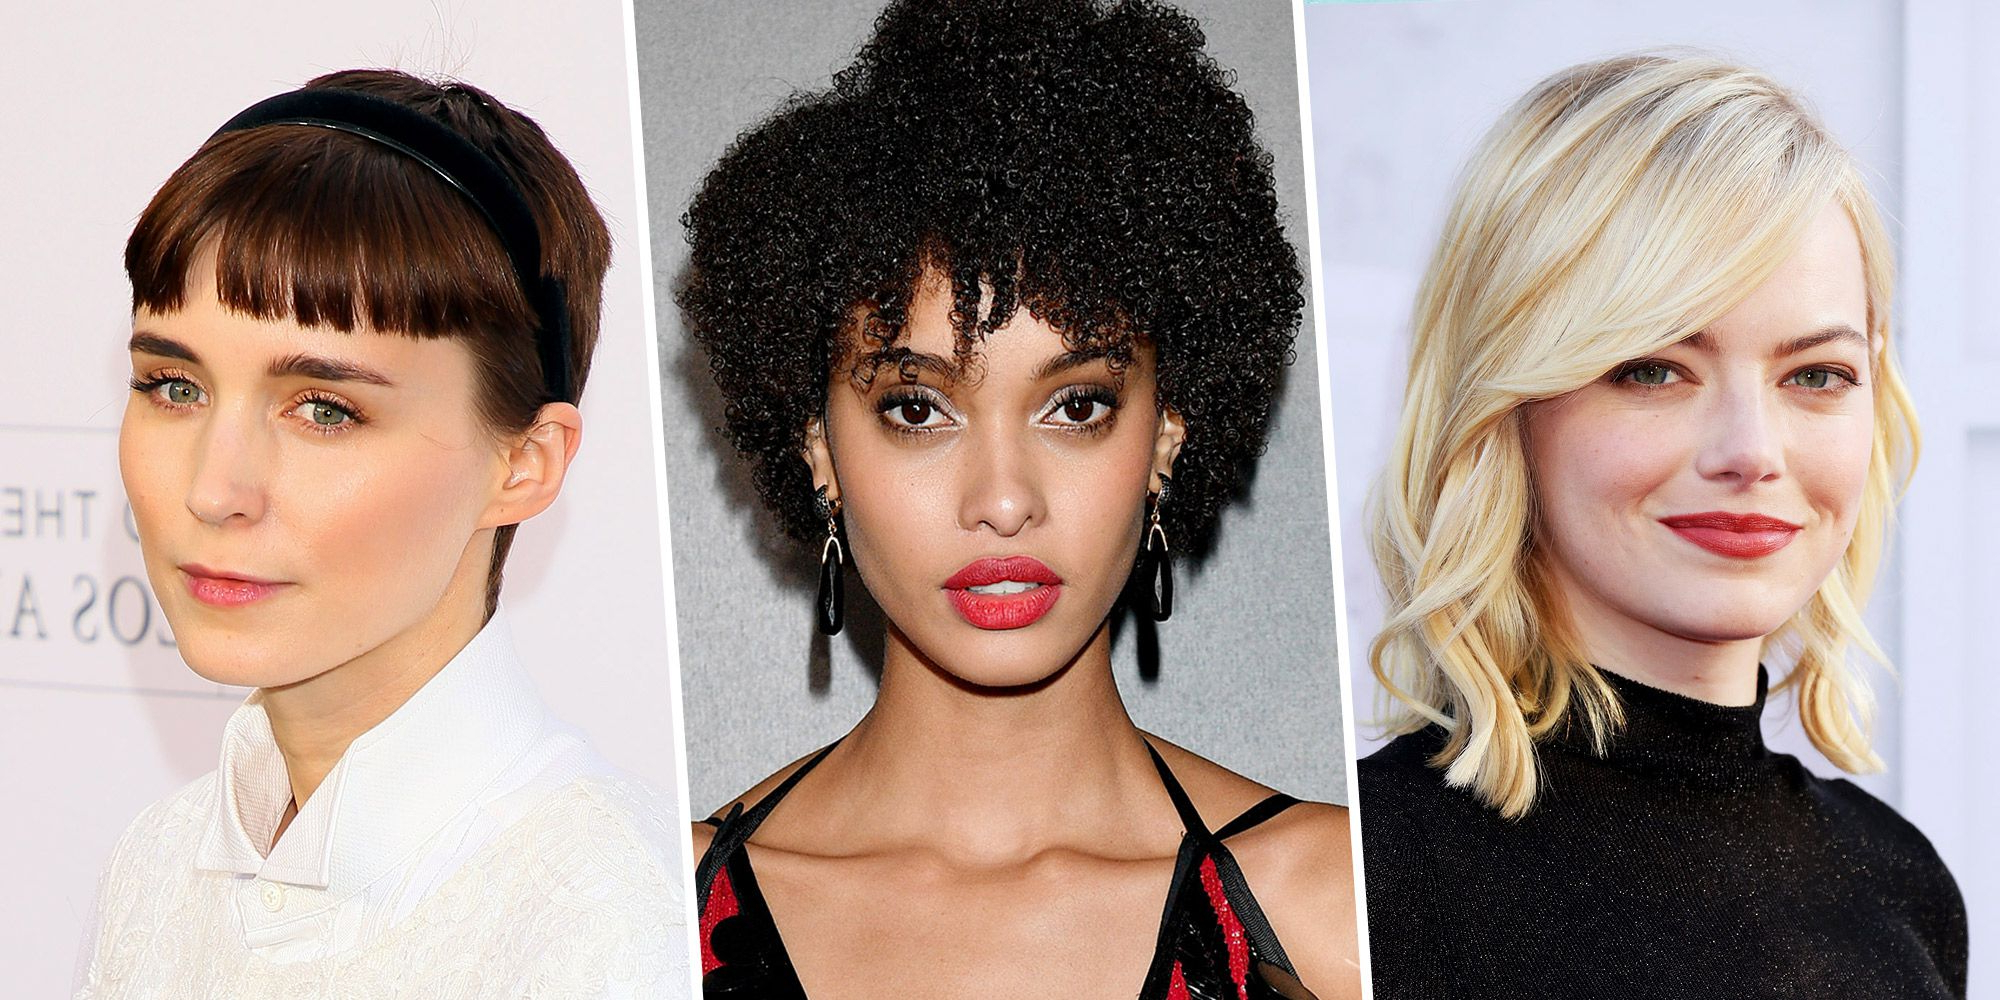 65 Best Short Hairstyles, Haircuts, And Short Hair Ideas For 2018 For Black Hairstyles Short Haircuts (View 17 of 25)